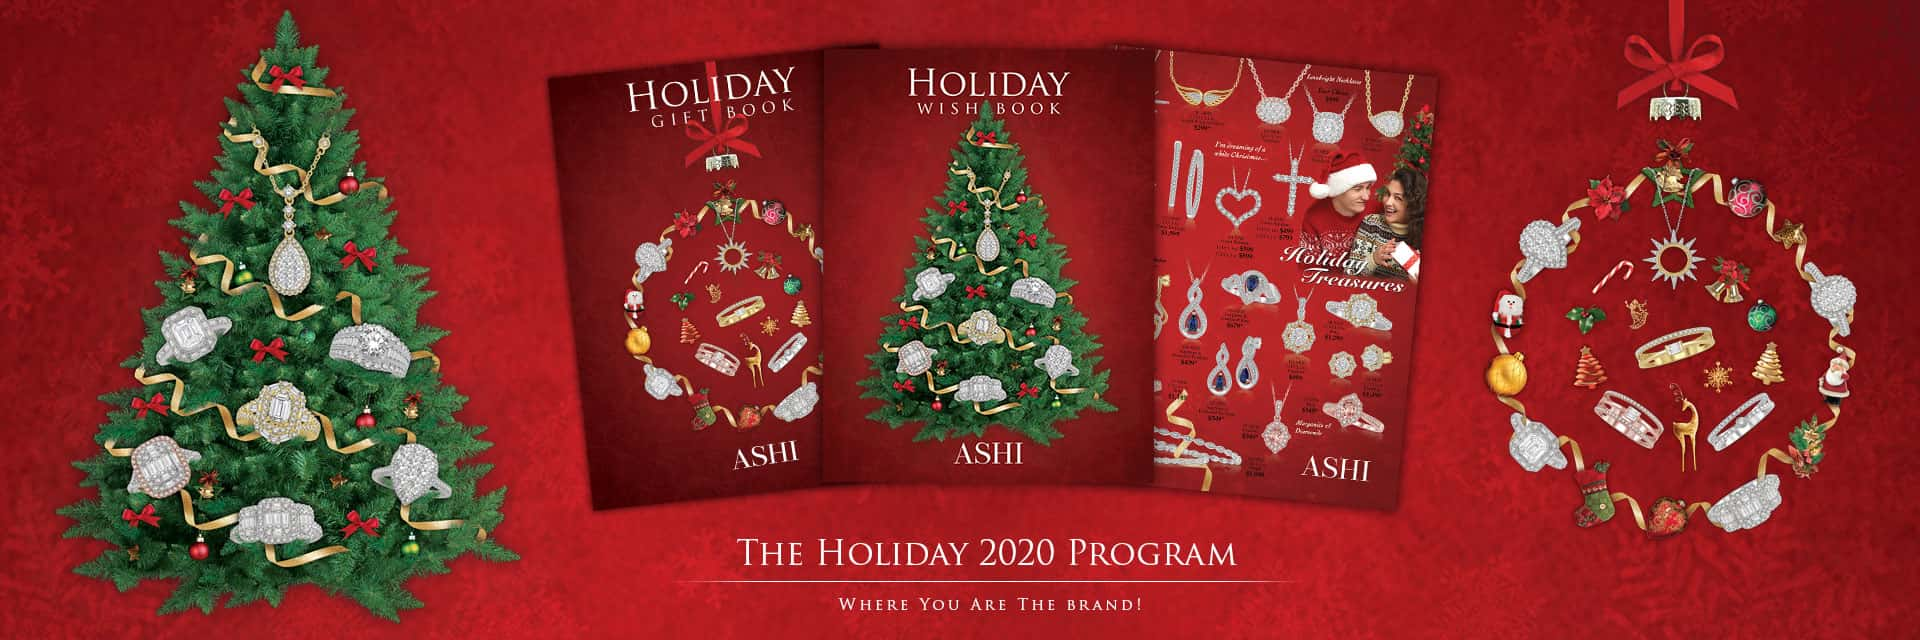 Holiday 2020 Program